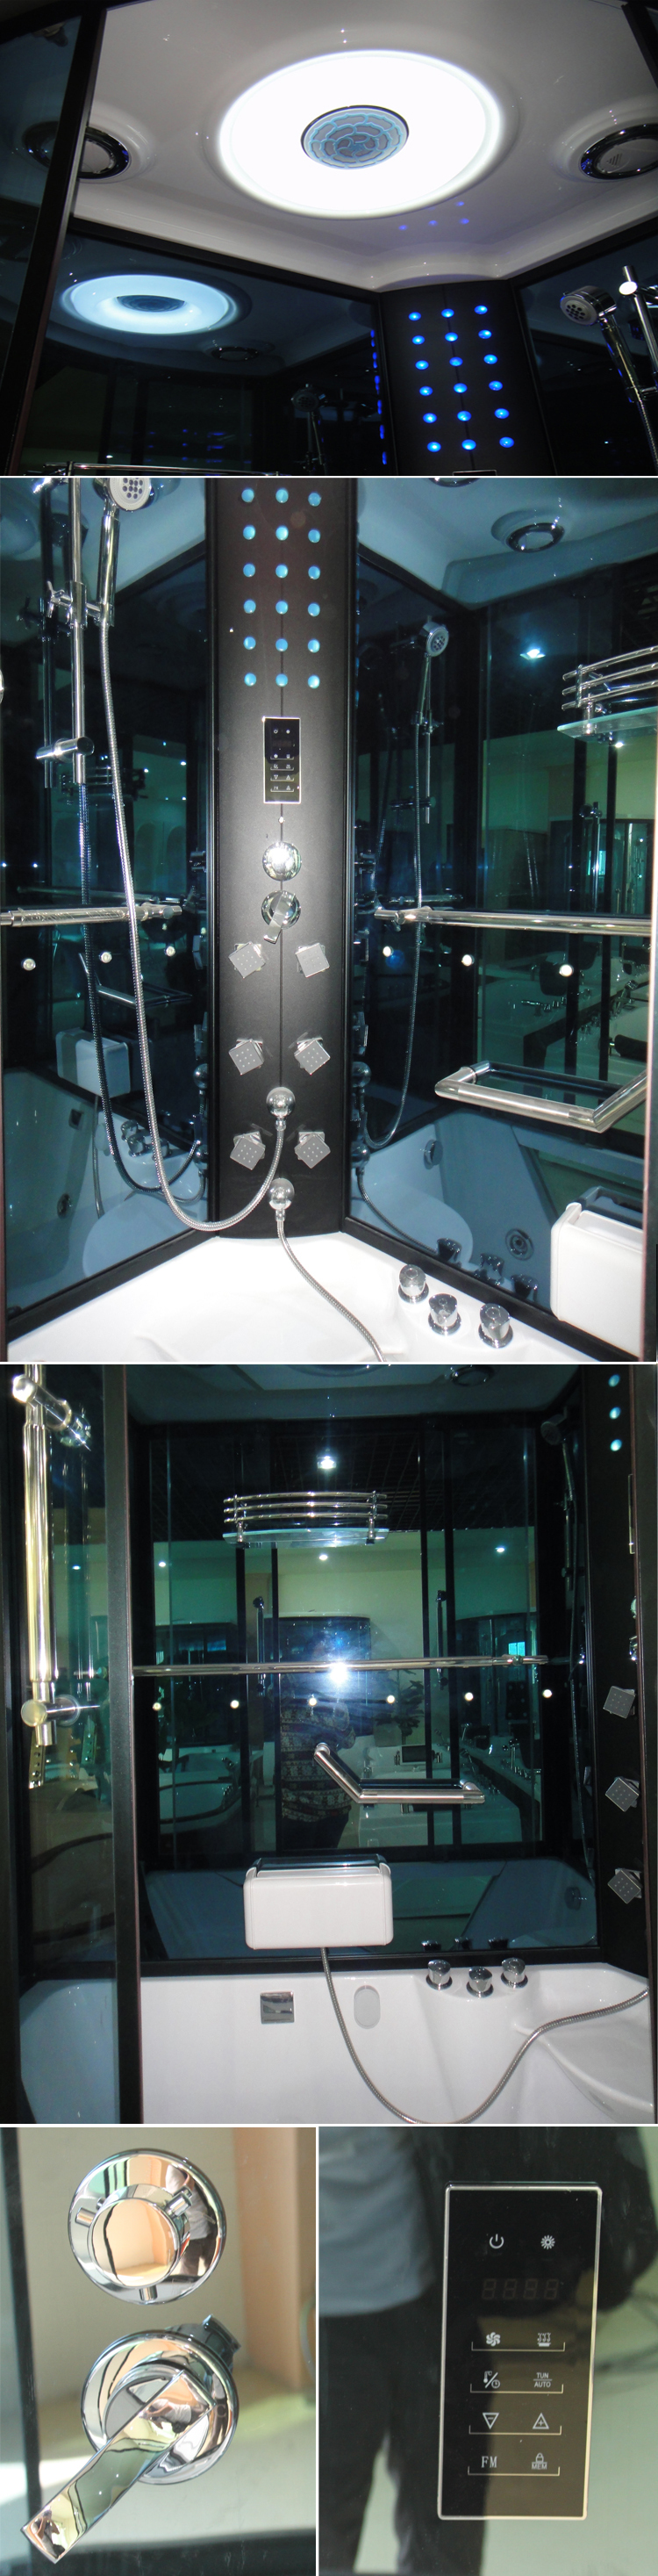 HS-SR073A multifunctional cabin tub glass whirlpool steam shower room